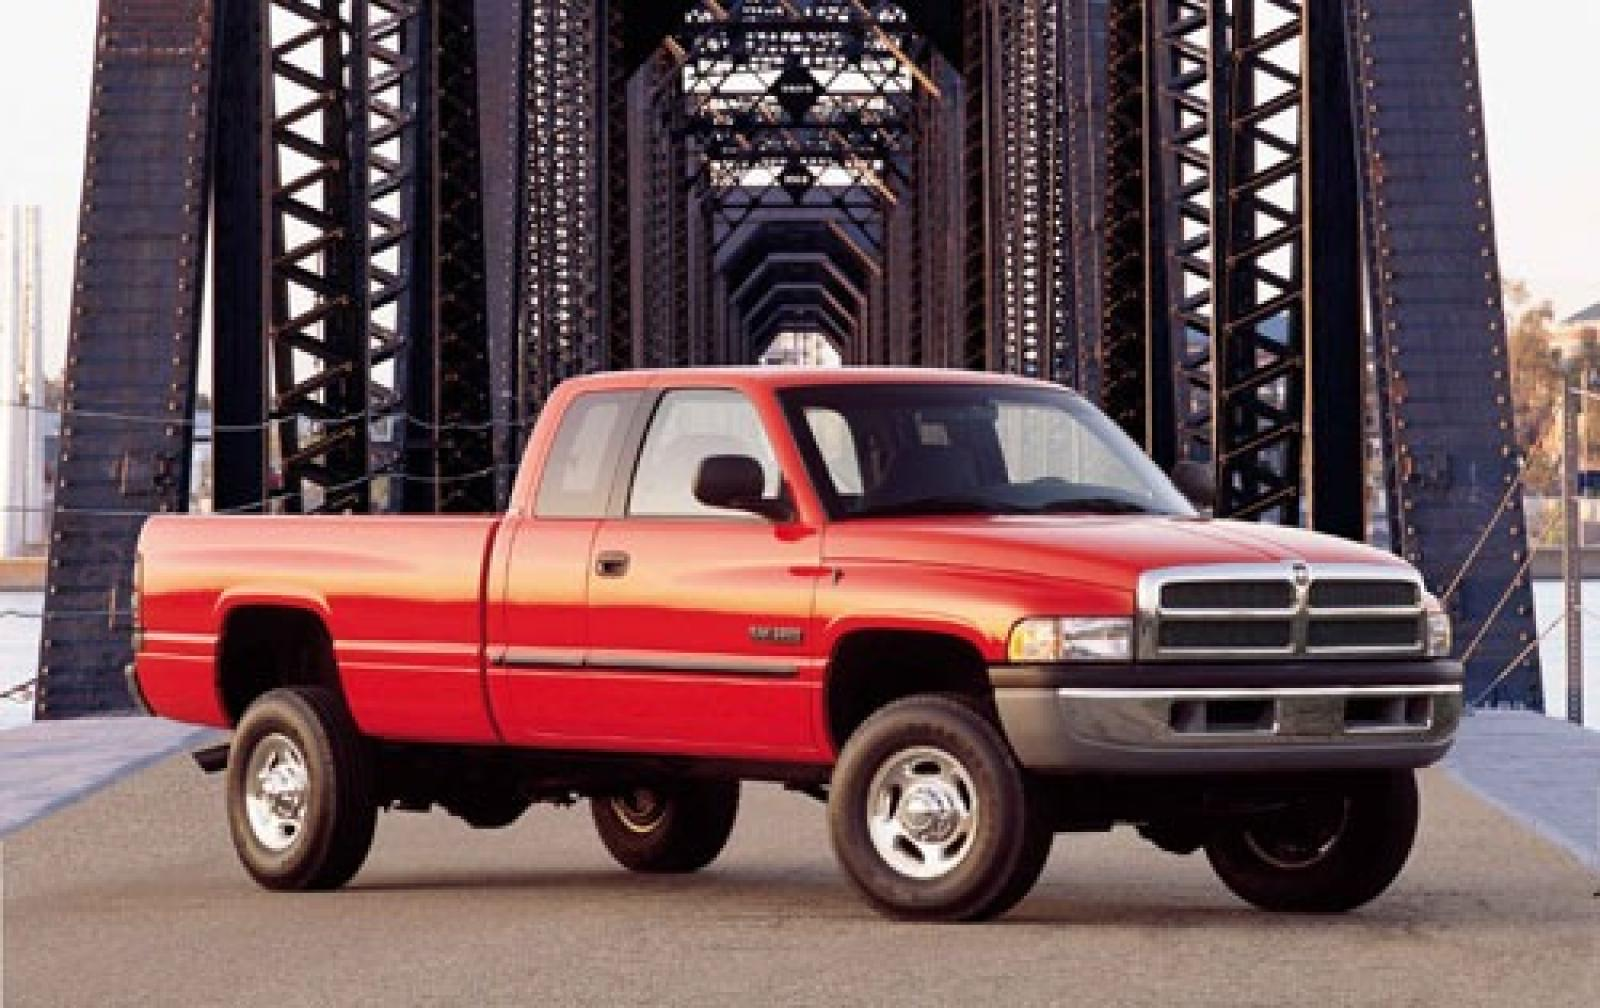 hight resolution of 2001 dodge ram pickup 2500 1 800 1024 1280 1600 origin